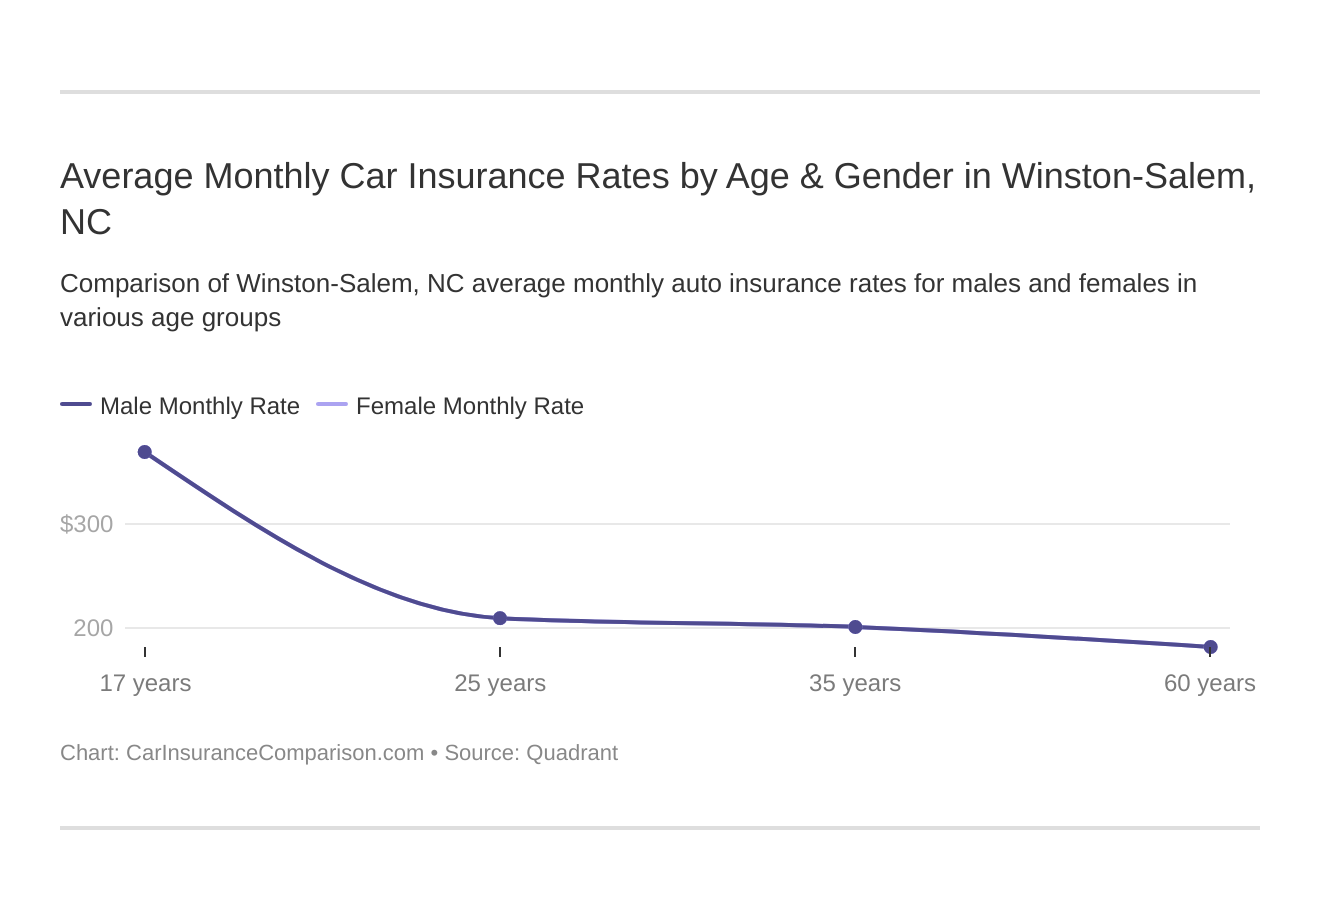 Average Monthly Car Insurance Rates by Age & Gender in Winston-Salem, NC